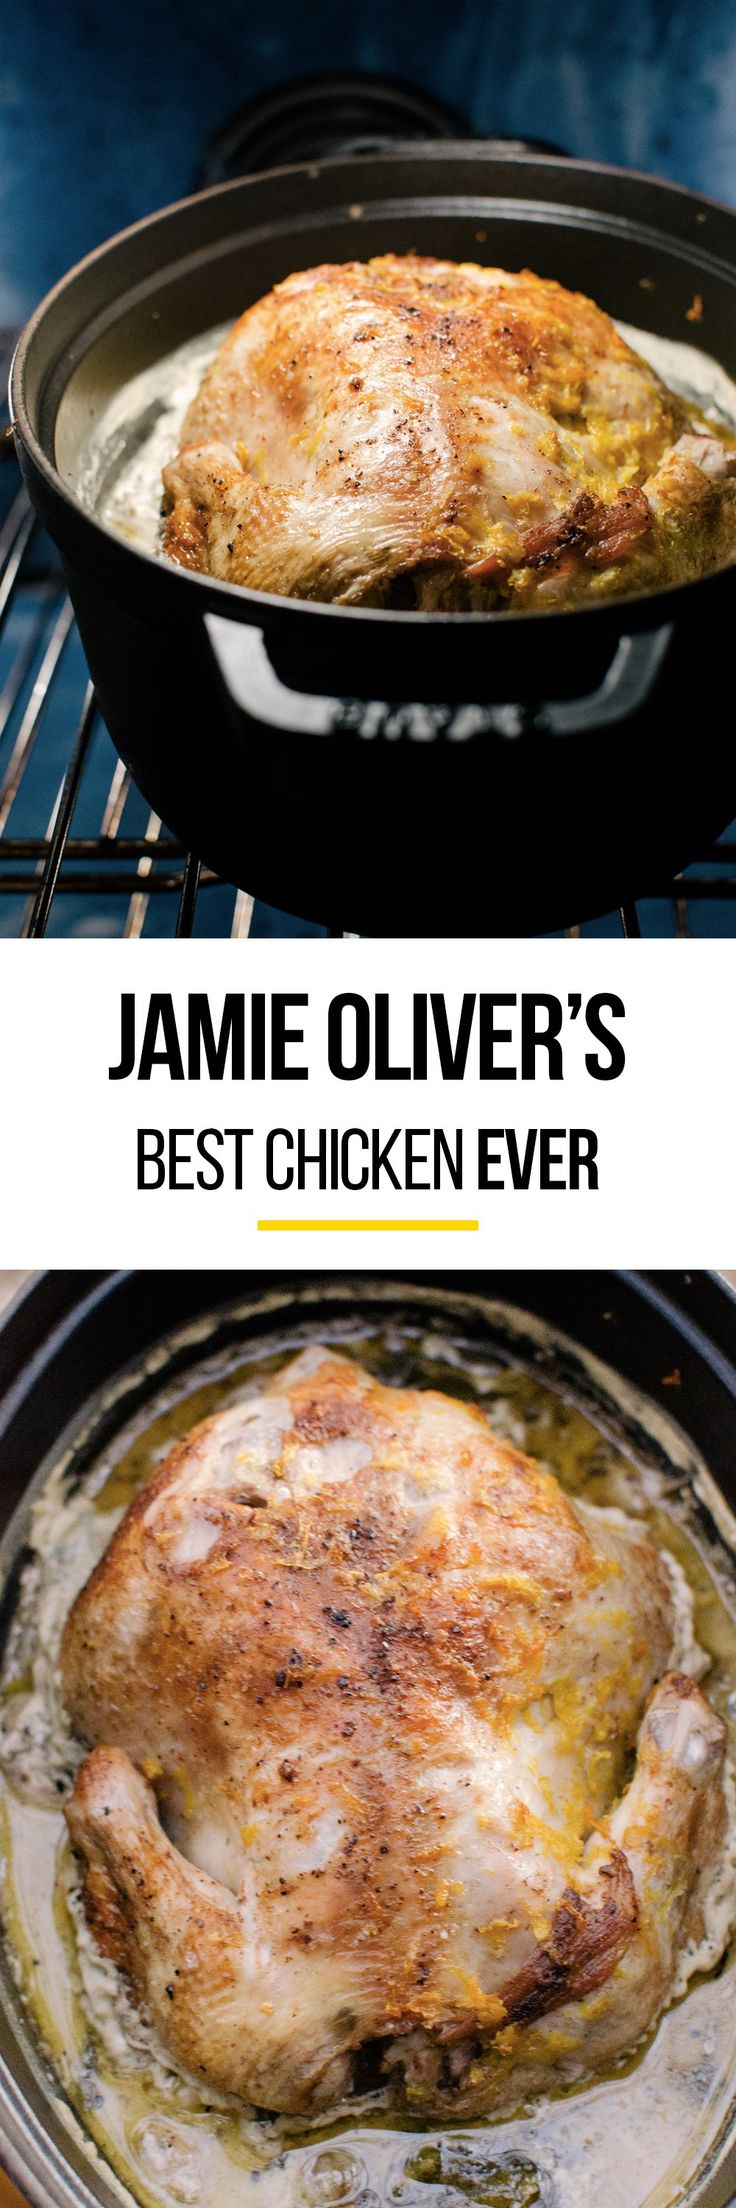 Jamie Oliver's Chicken in Milk Is Probably the Best Chicken Recipe of All Time. This EASY recipe is perfect comfort food for cold weather. Great if you're looking for meals and ideas to cook in you dutch oven! This braised chicken is so moist and tender, flavored with lemon and simple spices -- your whole family will love it!